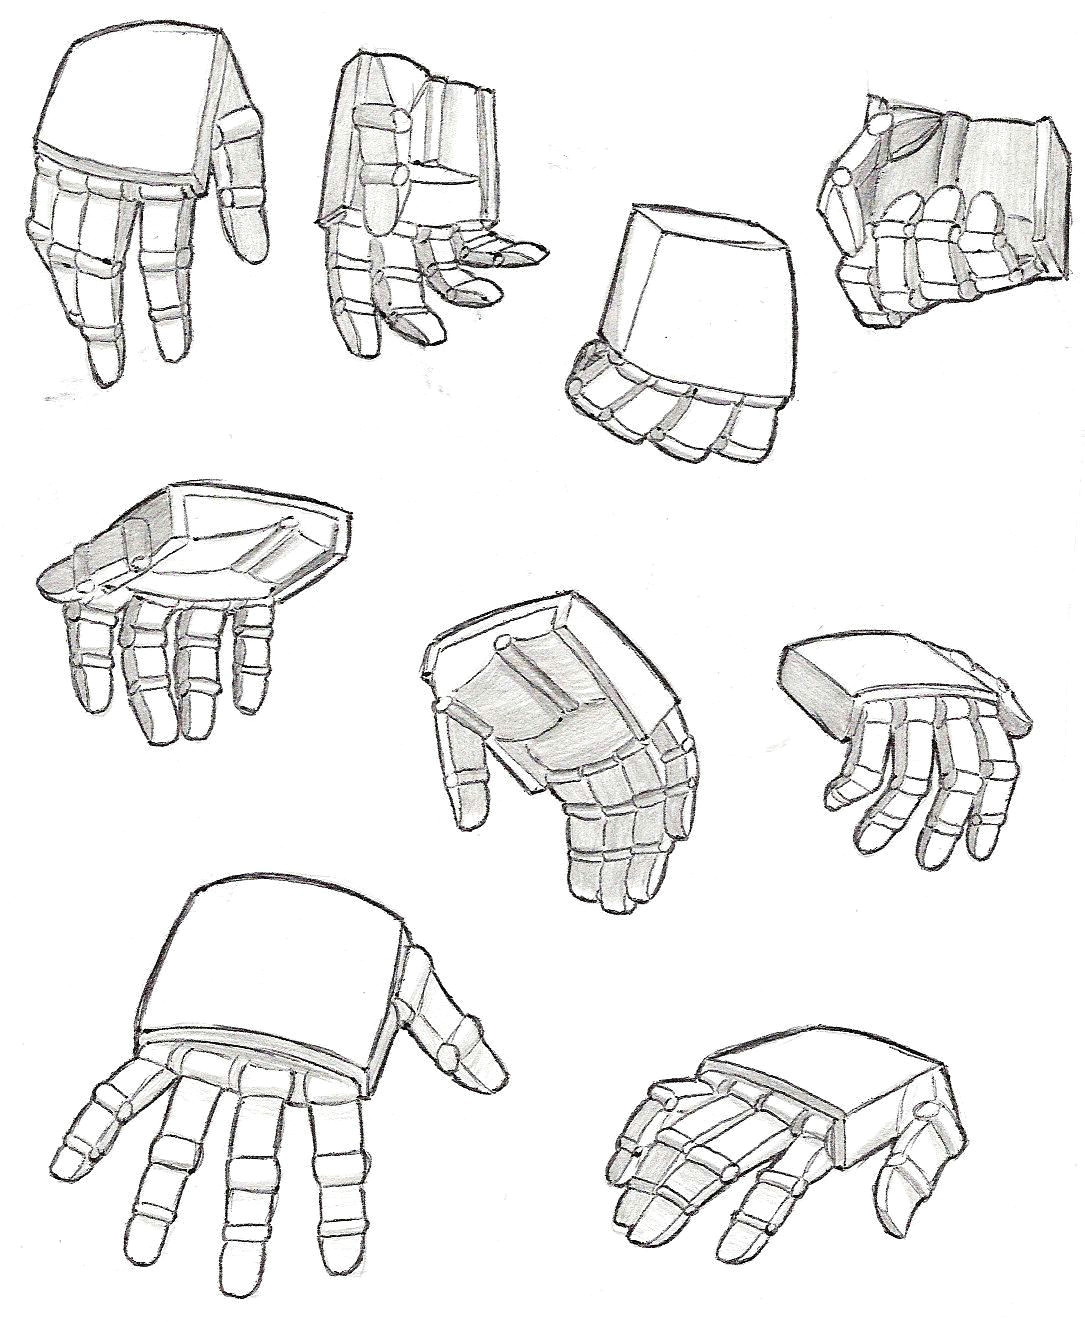 robot hand transformers funny figure sketching hand sketch draw something carina